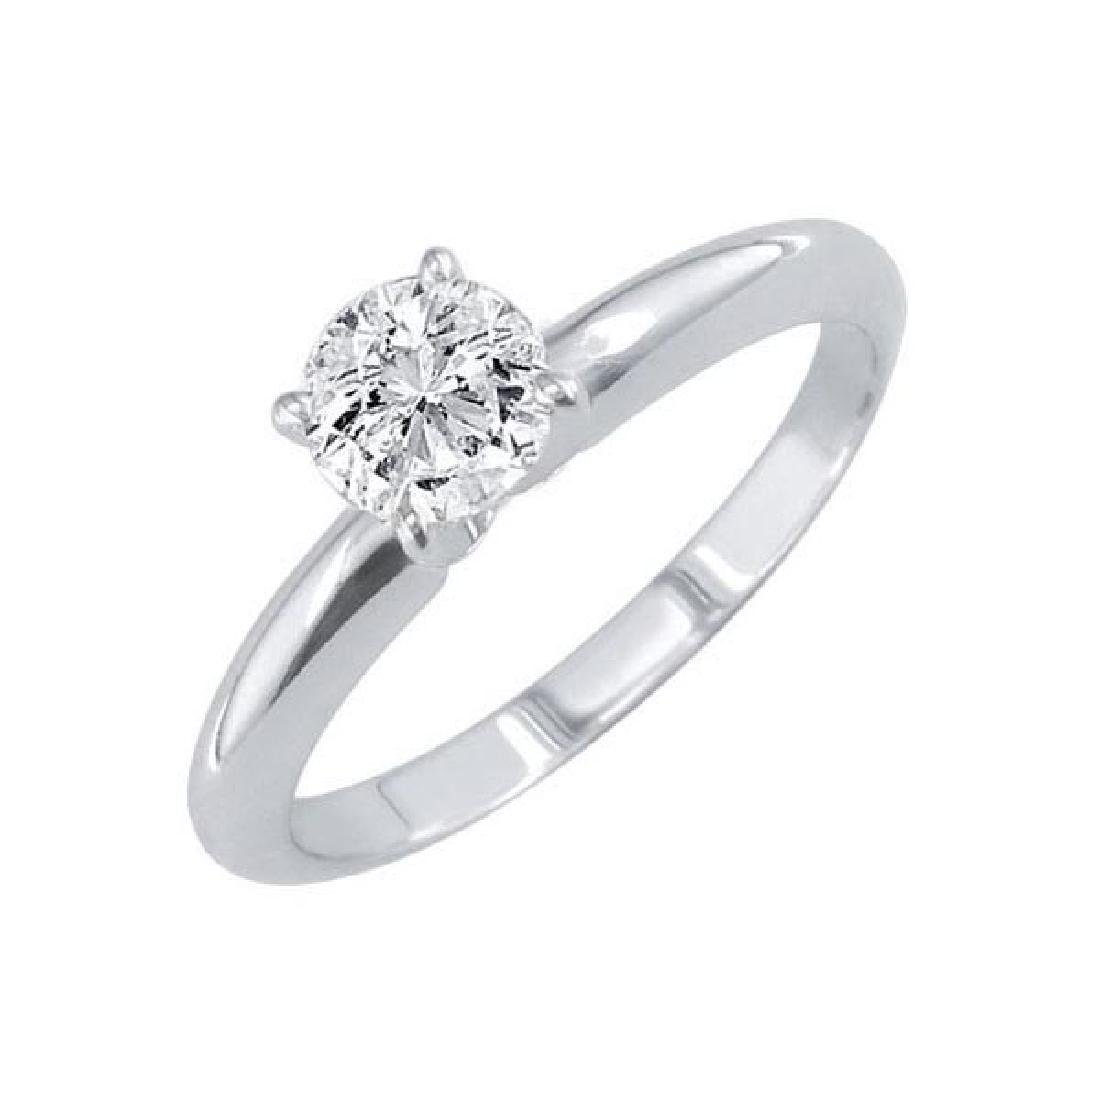 Certified 1.03 CTW Round Diamond Solitaire 14k Ring J/S